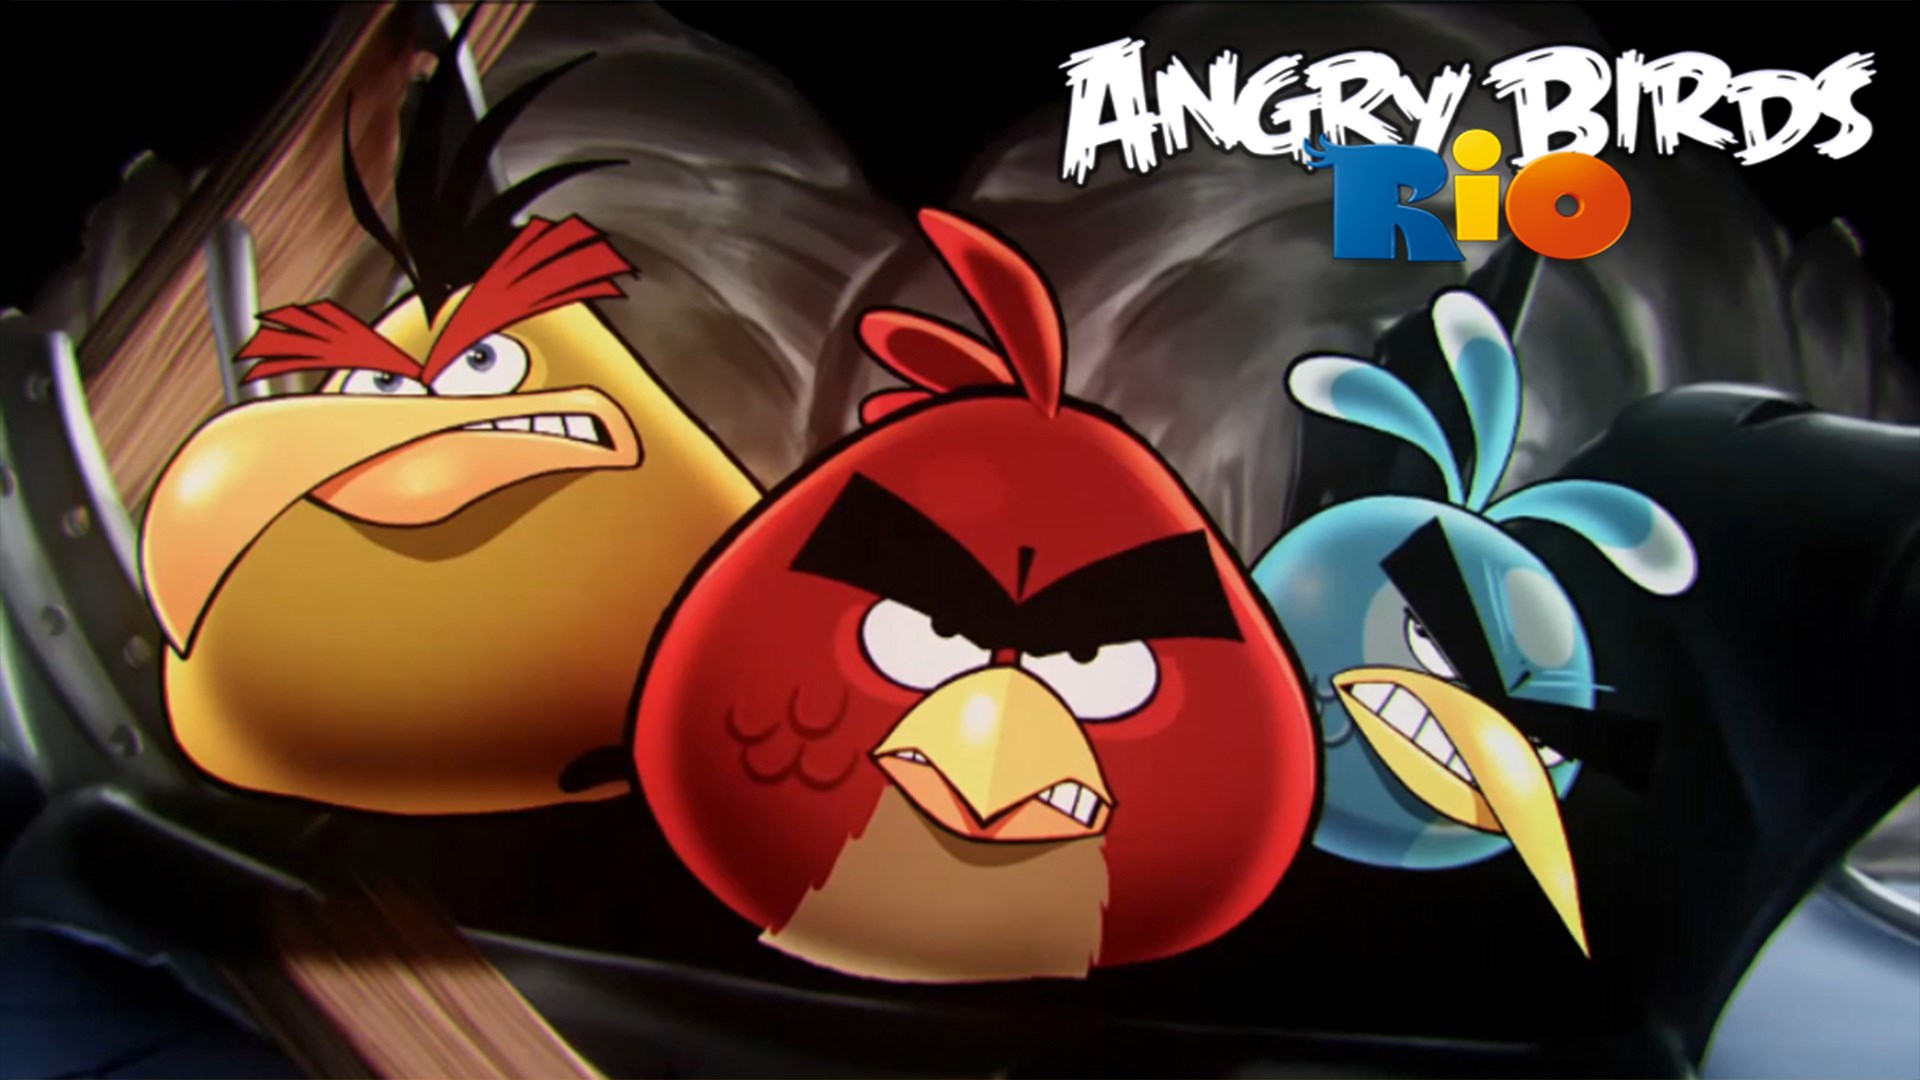 angry-birds-rio-pic-Collection-Duke-Bishop-1920x1080-wallpaper-wp3402391